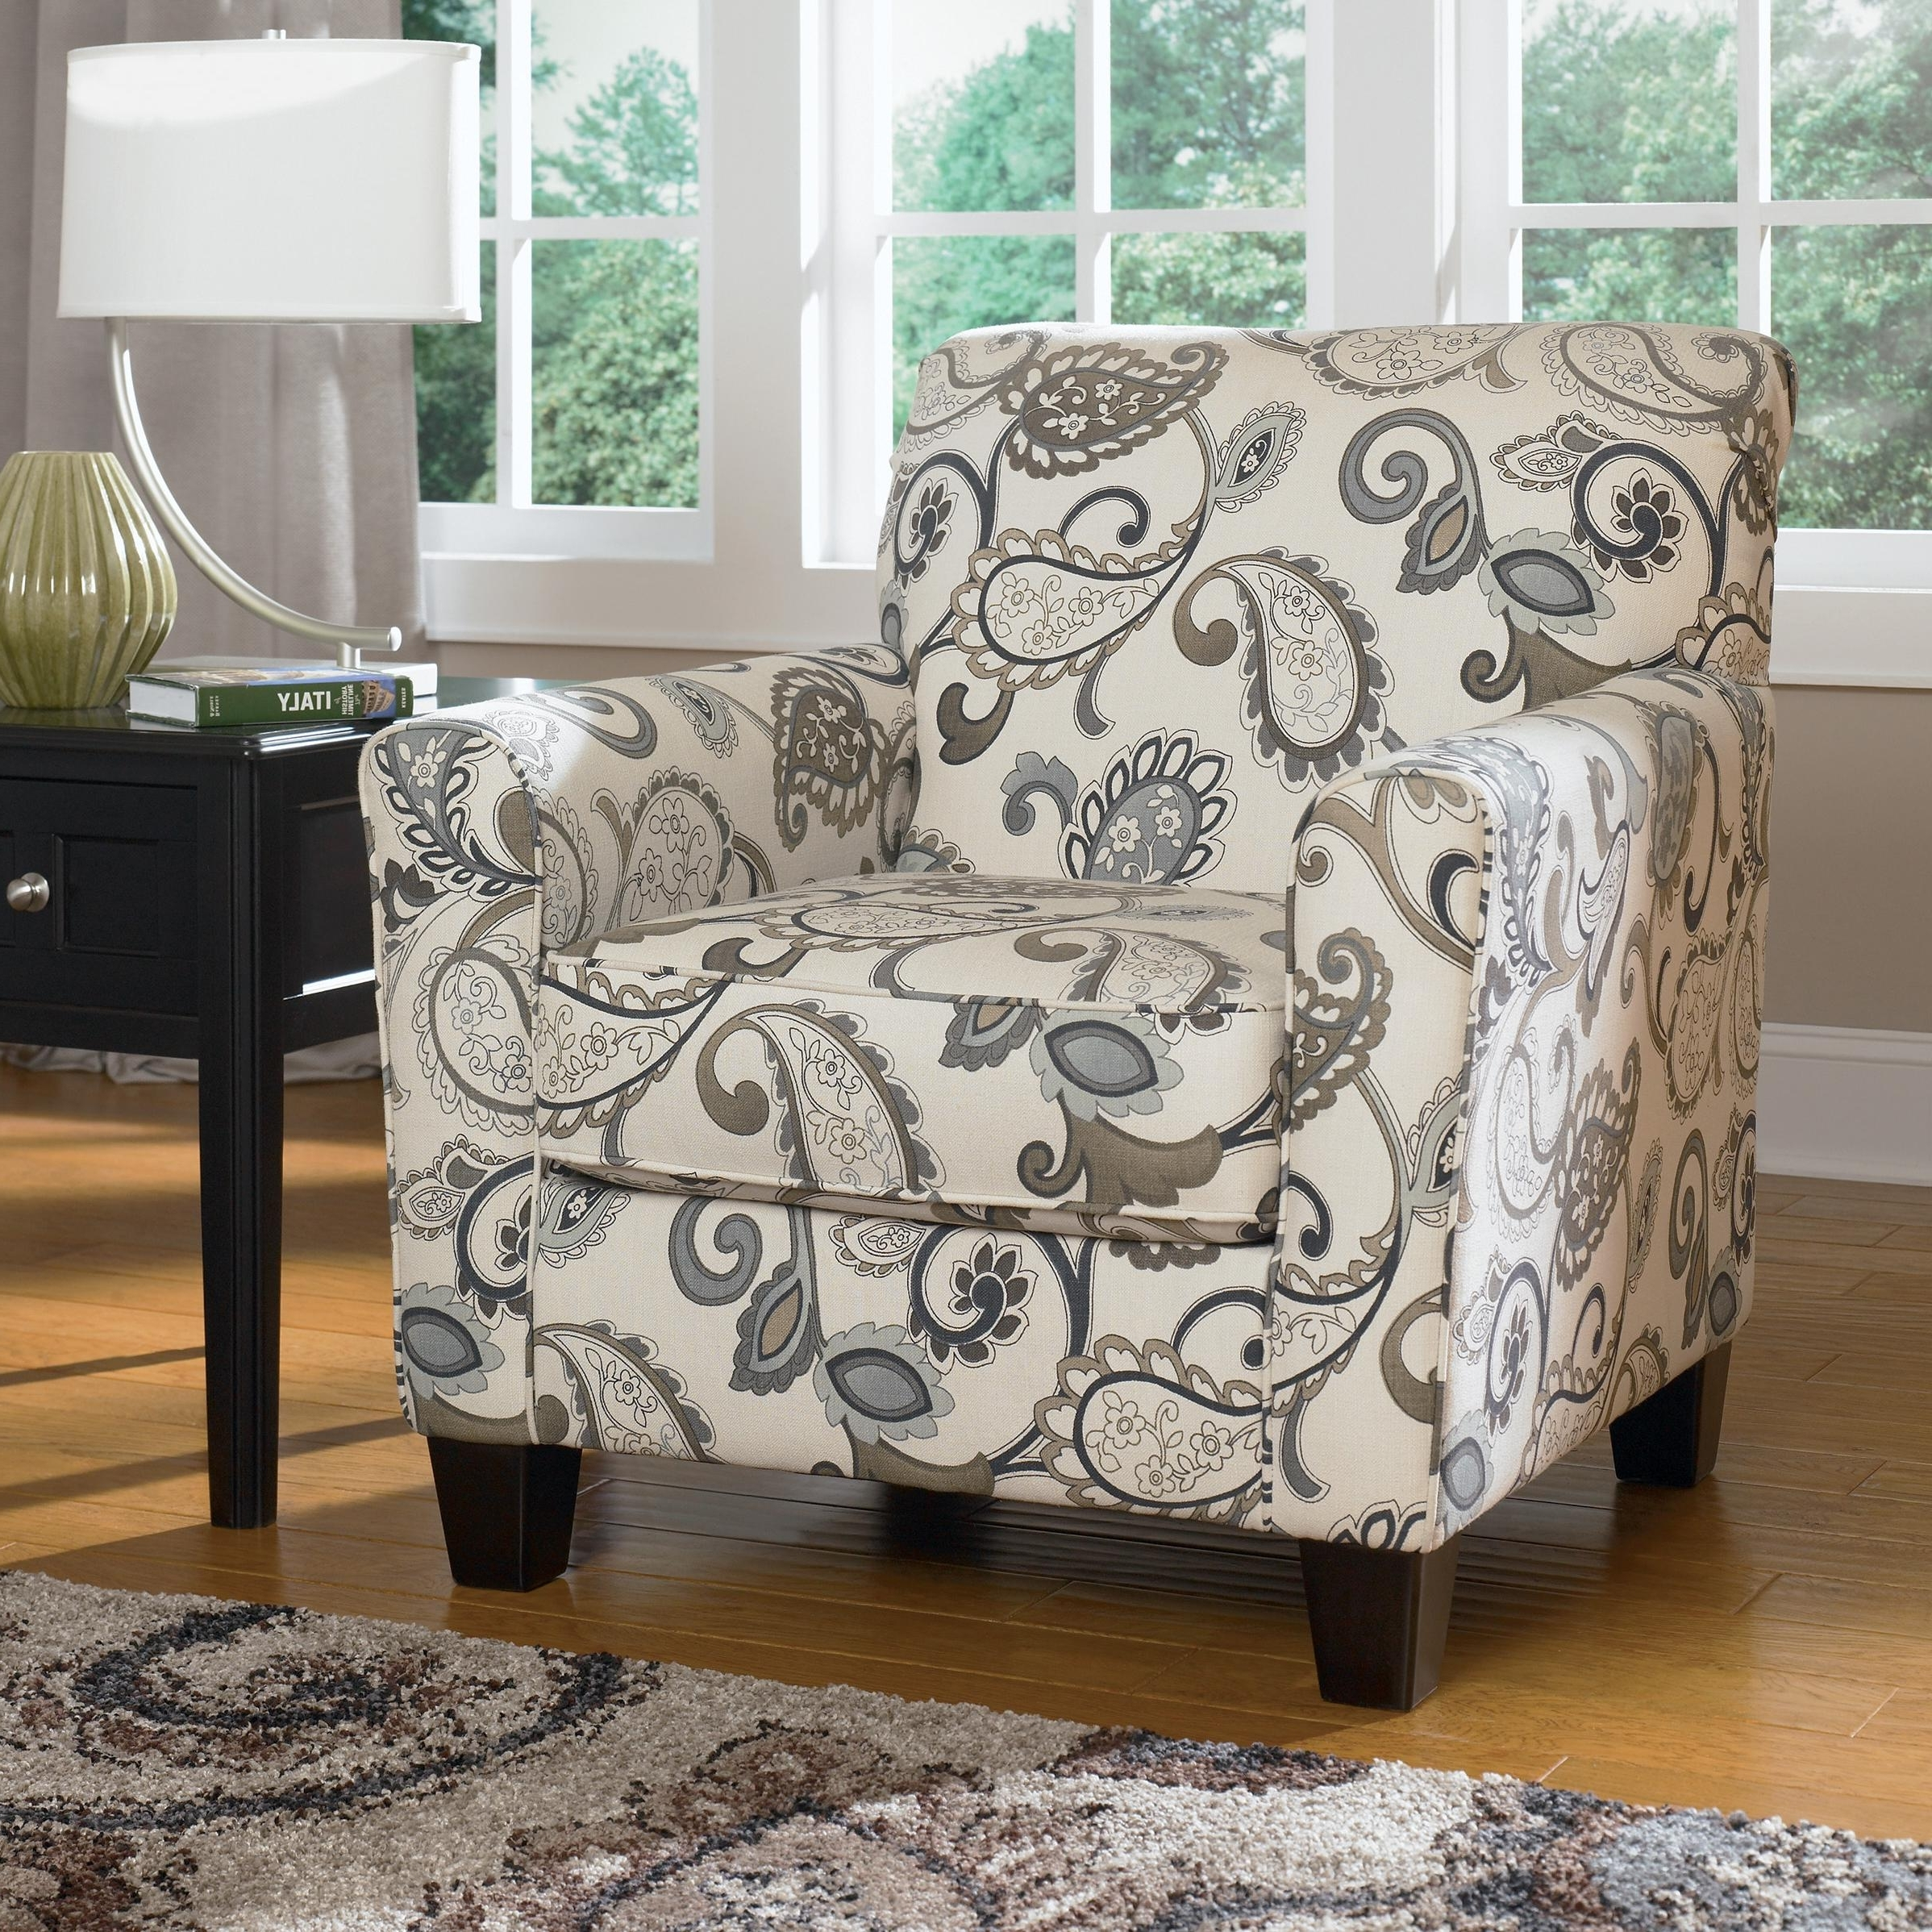 2019 Accent Sofa Chair – Sofa Designs For Accent Sofa Chairs (View 19 of 20)